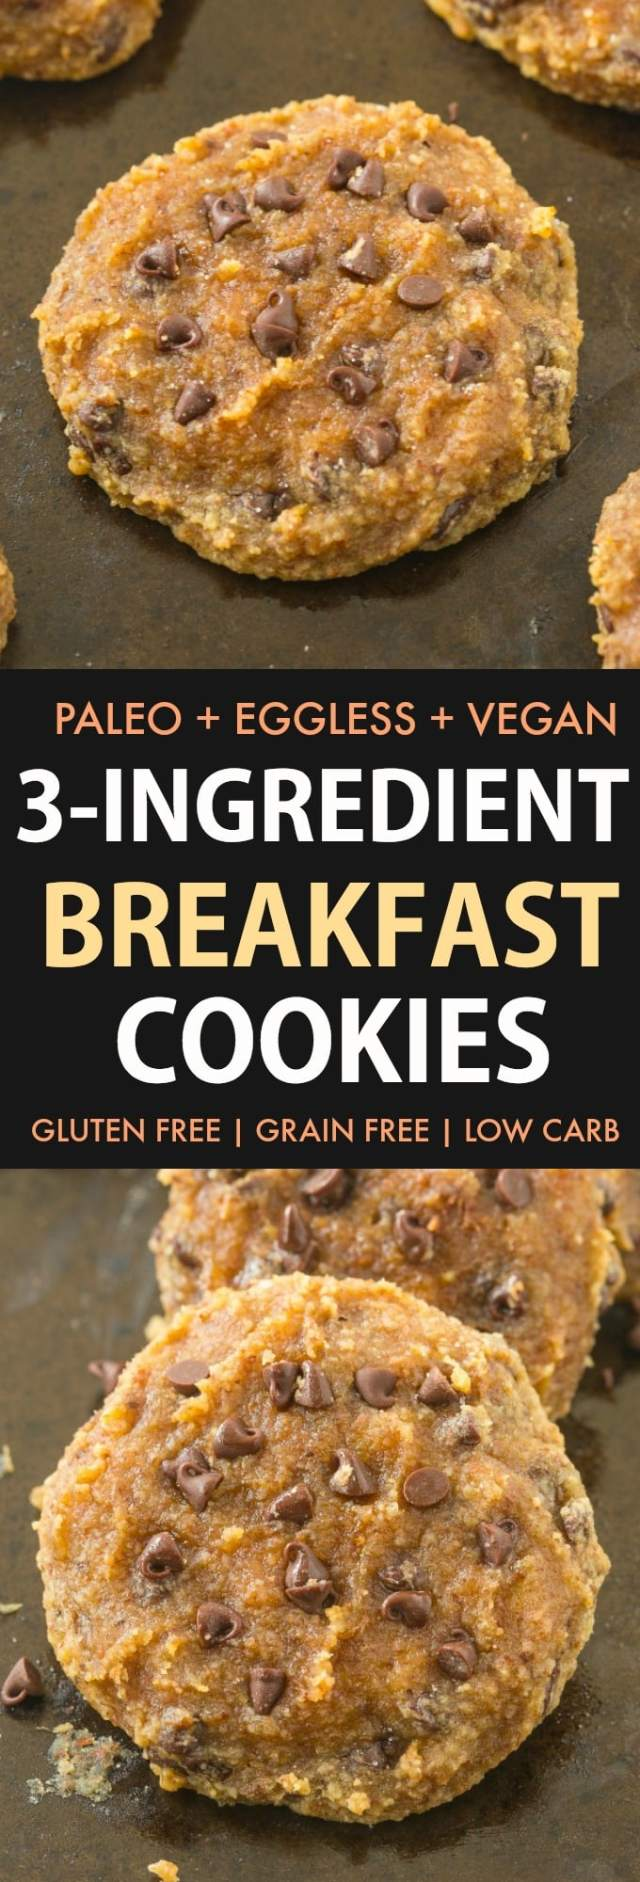 Paleo and vegan breakfast cookies made with almond flour and topped with chocolate chips